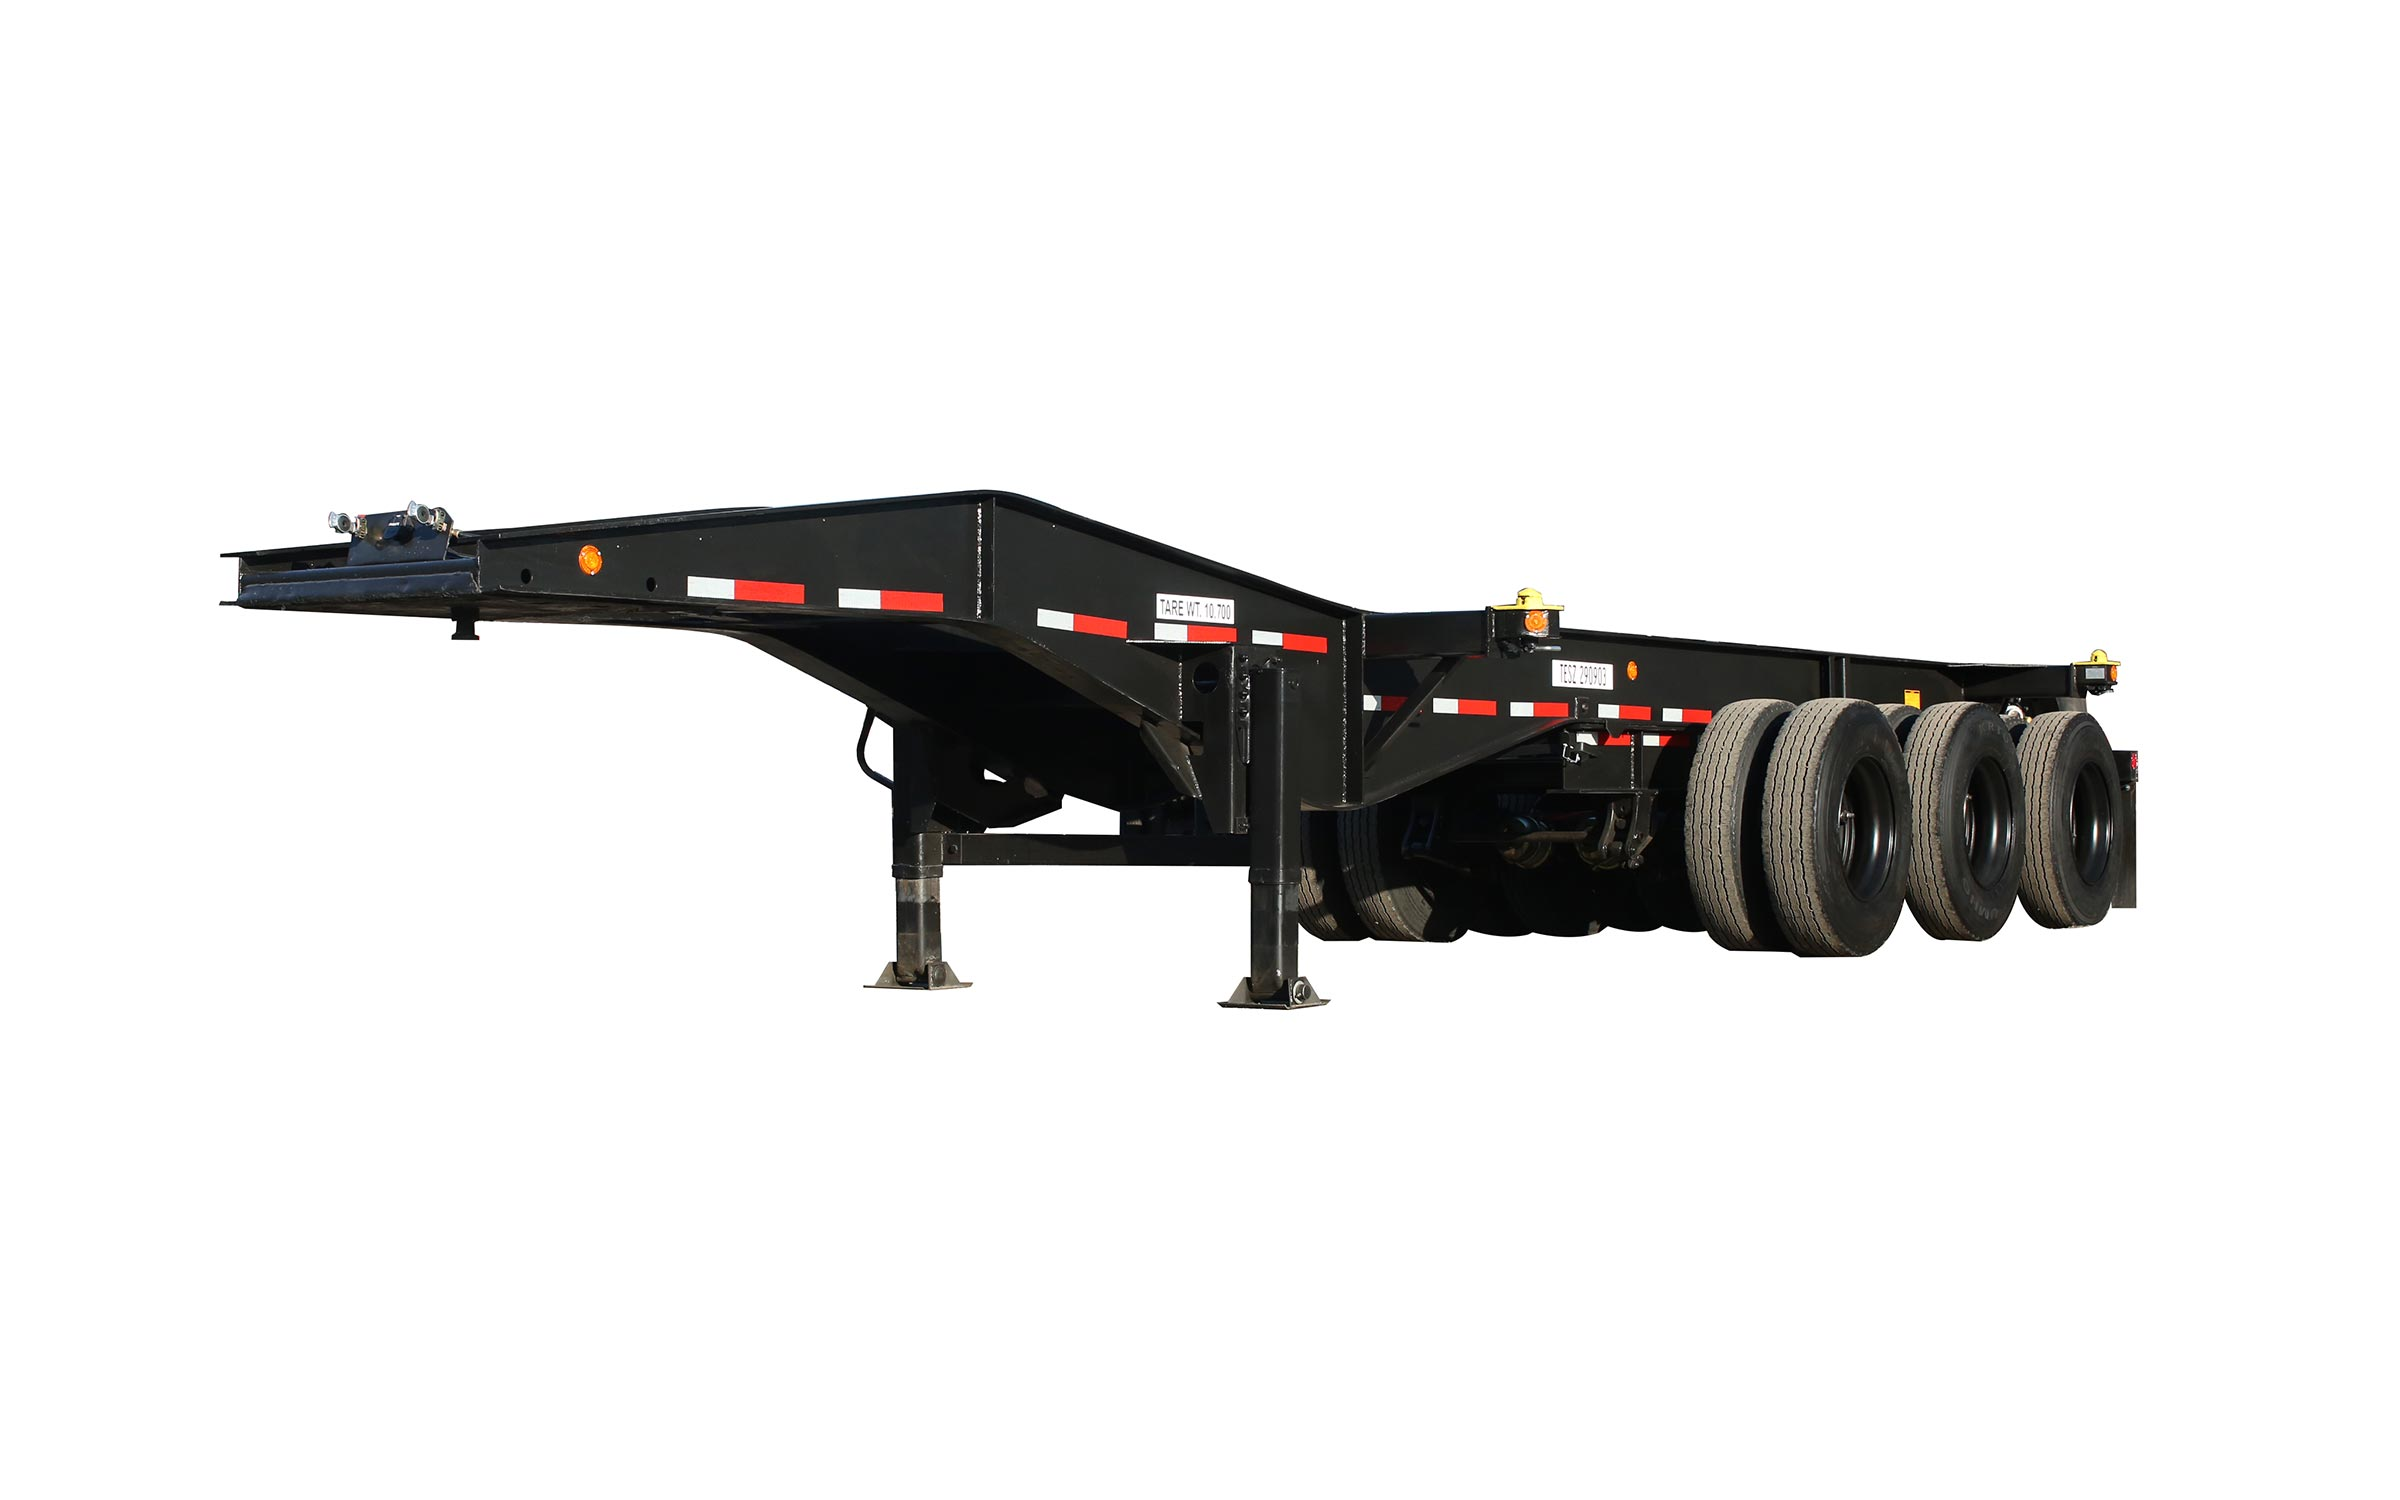 3 wheel 23 foot chassis from the front